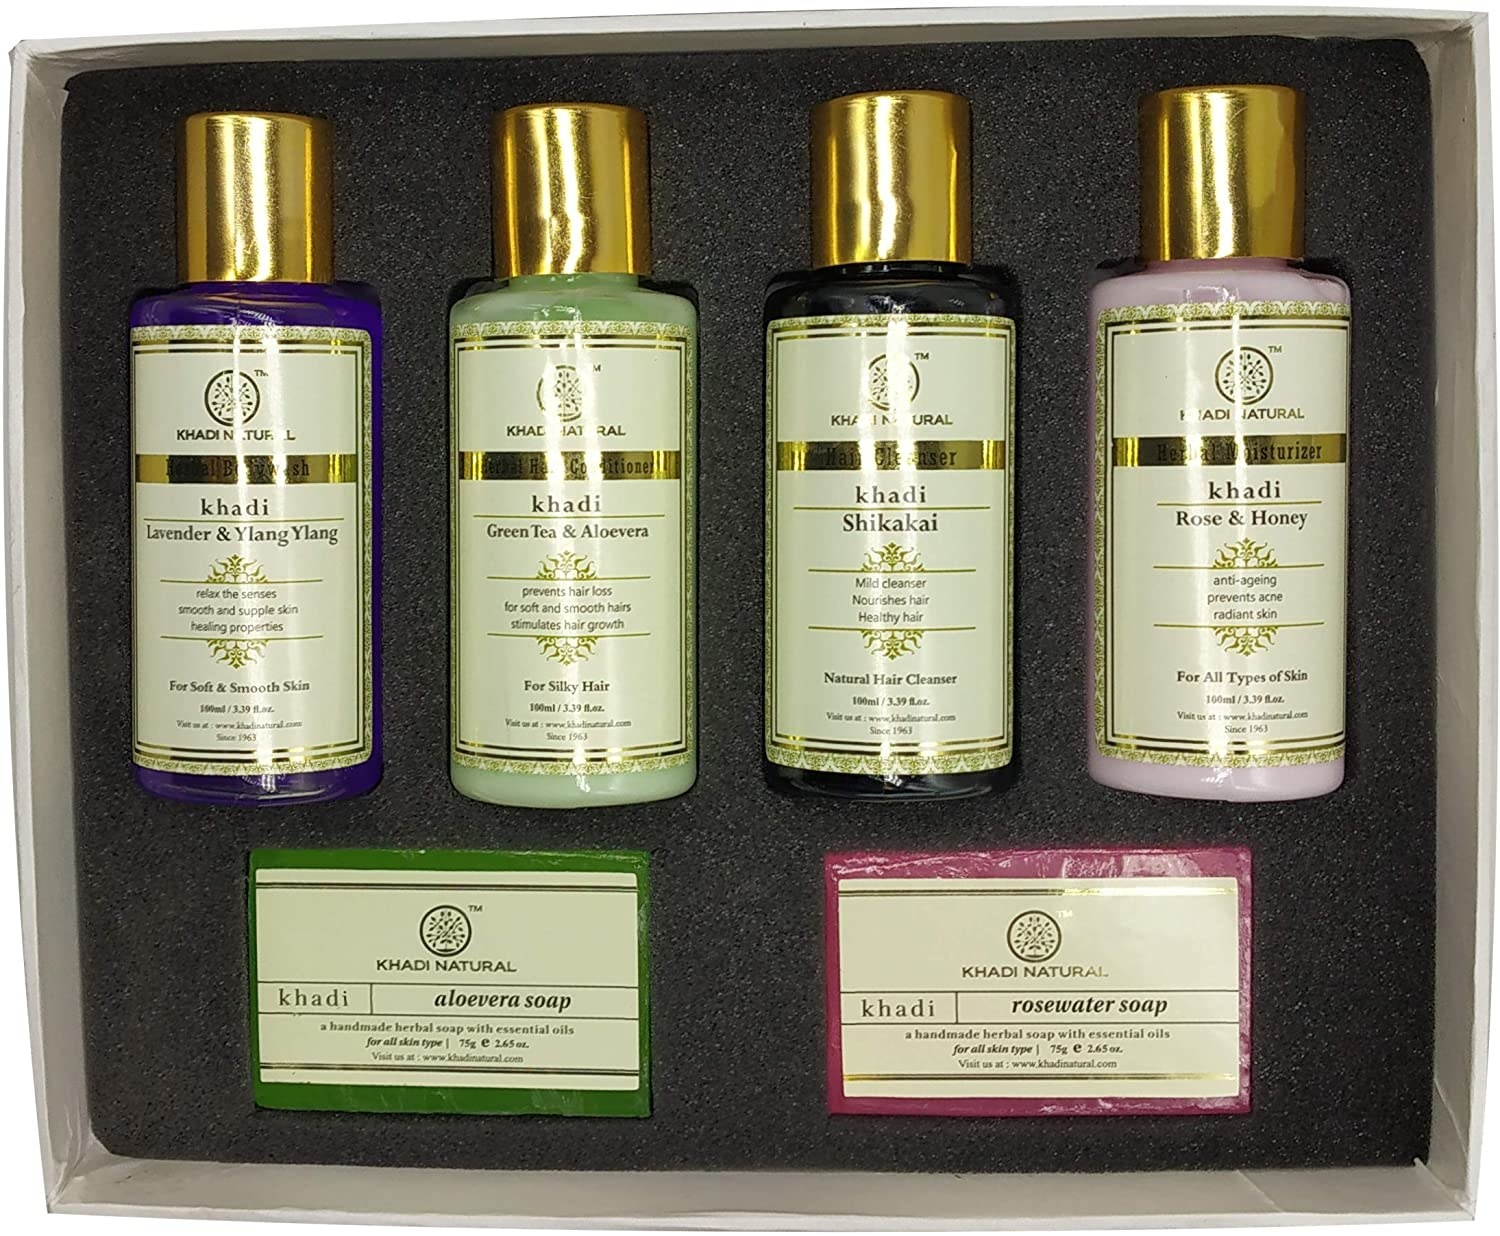 A Khadi Naturals gift set with bath items in it